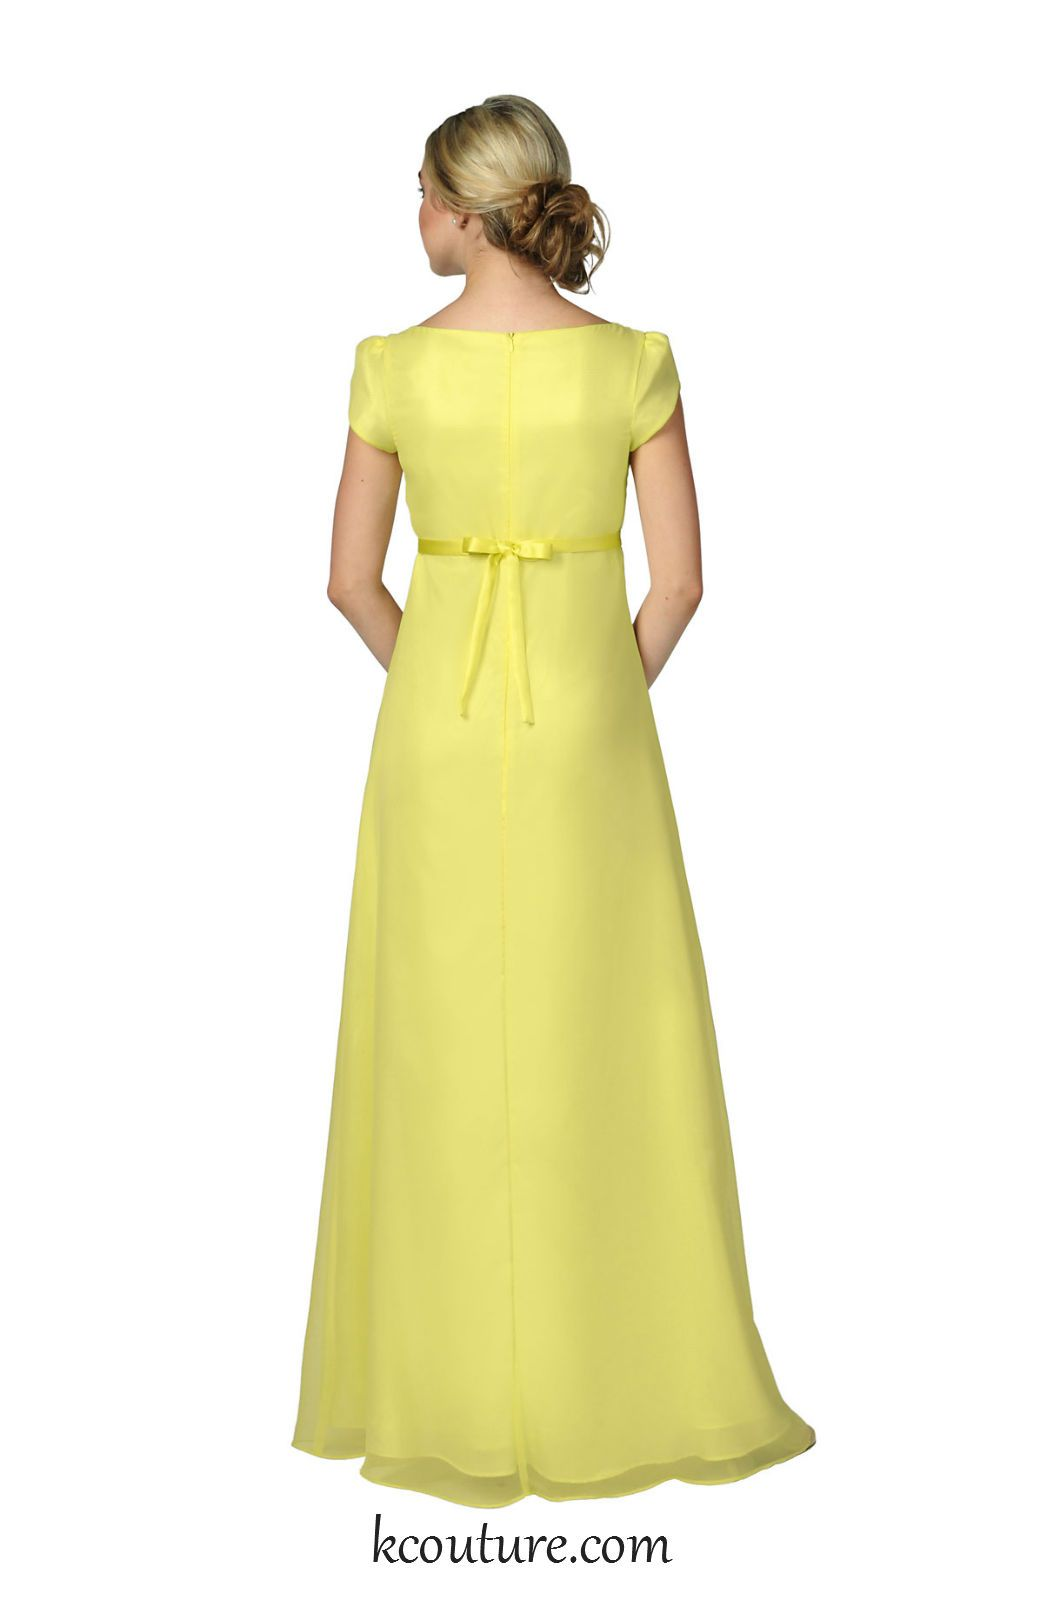 Yellow chiffon empire style bridesmaid dress with sleeves kcouture